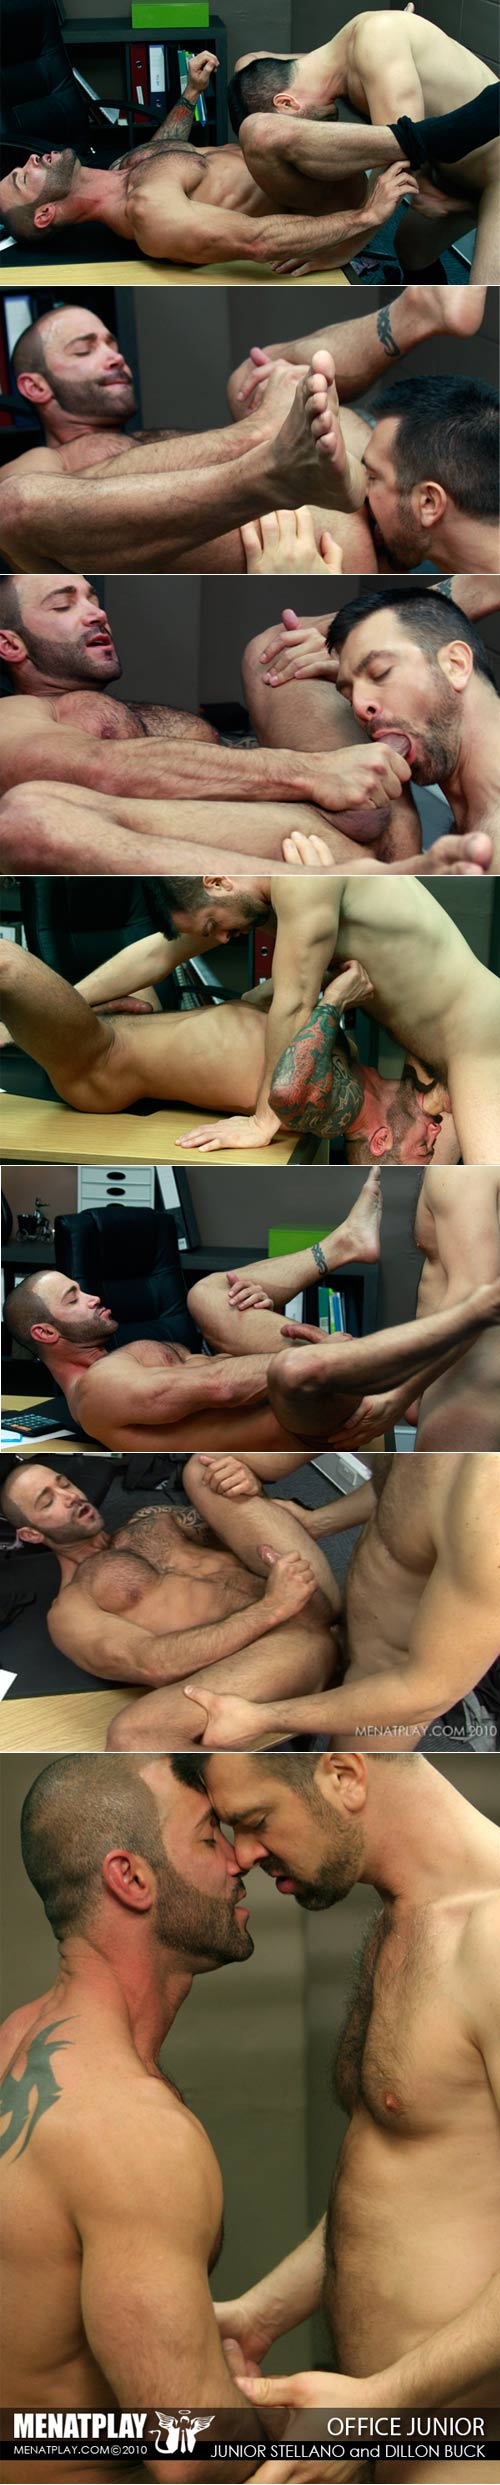 Office Junior (Junior Stellano & Dillon Buck) on MenAtPlay